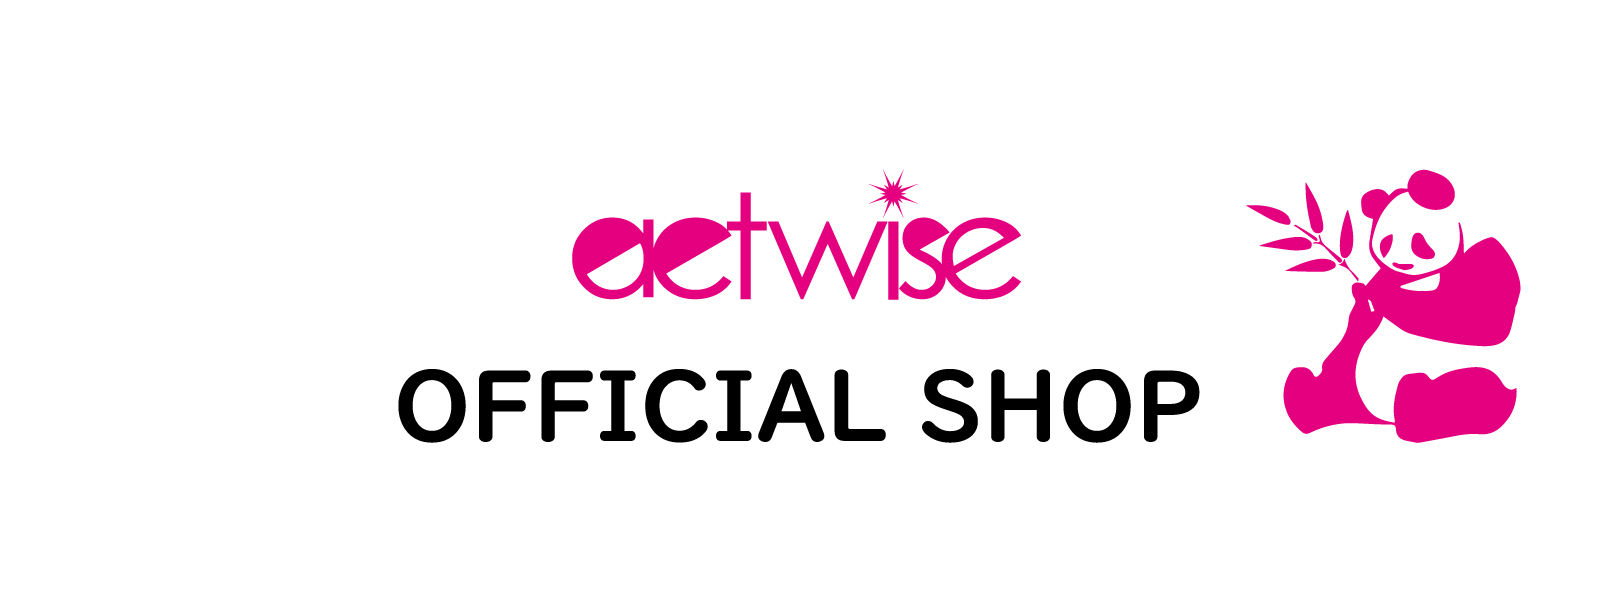 actwise OFFICIAL SHOP